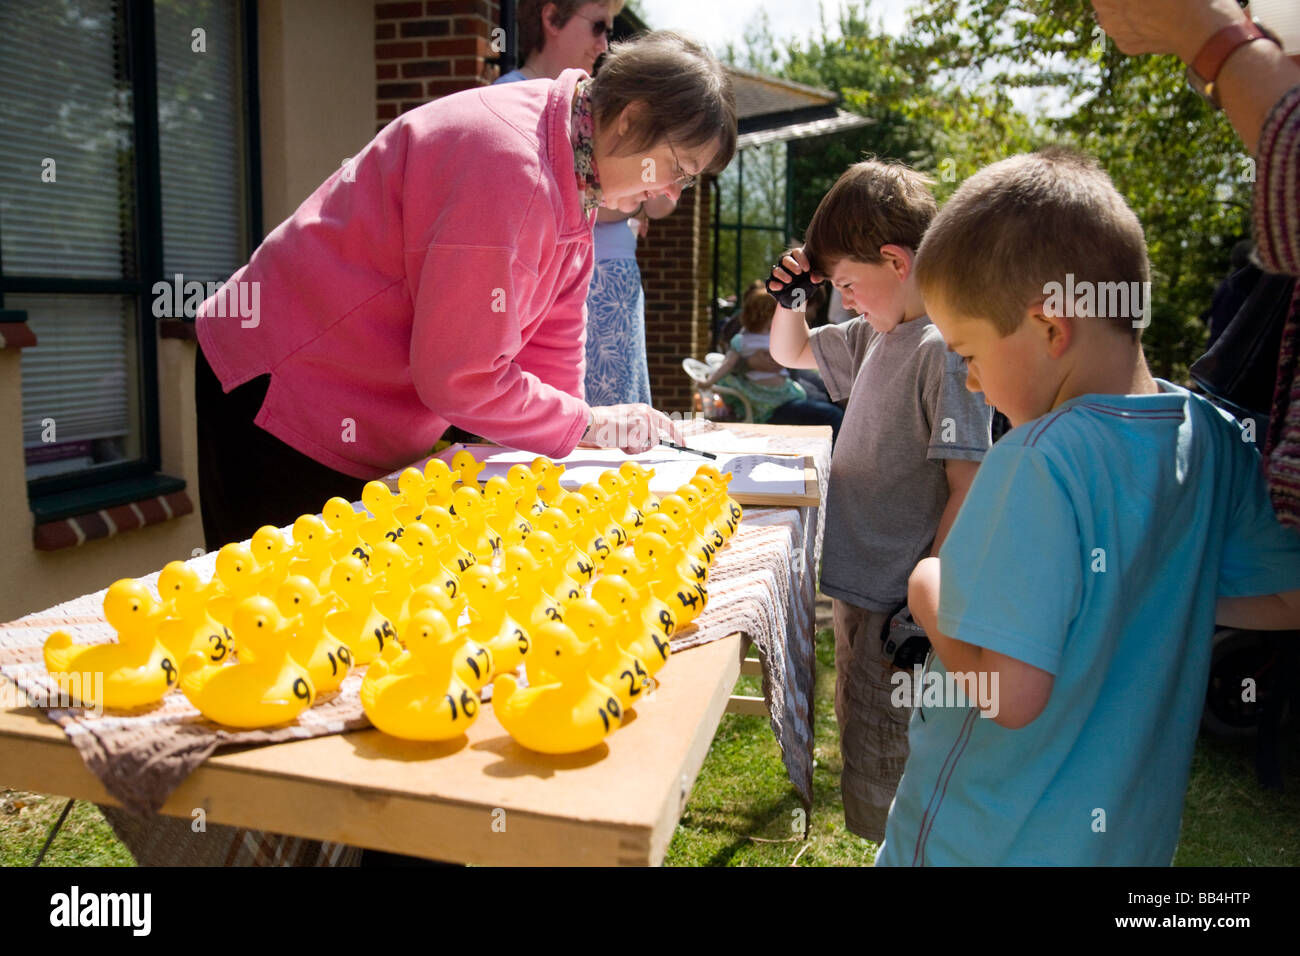 Children view the participants in a Charity plastic duck race at Wallingford, Oxfordshire, UK - Stock Image